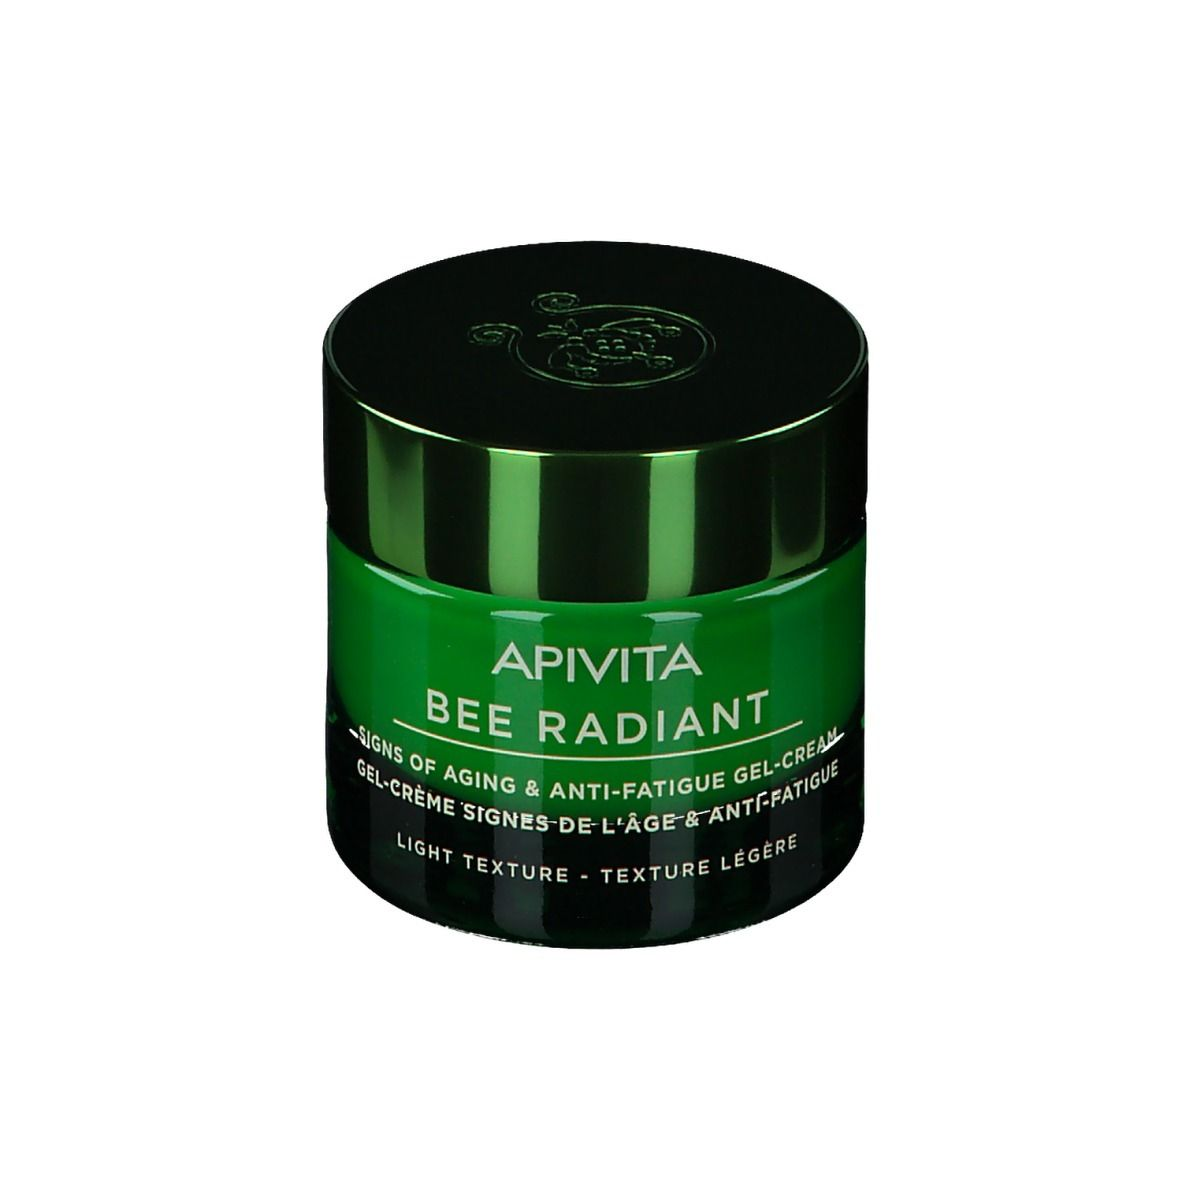 Image of APIVITA Bee Radiant Signs of Aging & Anti-Fatigue leichte Gel-Creme